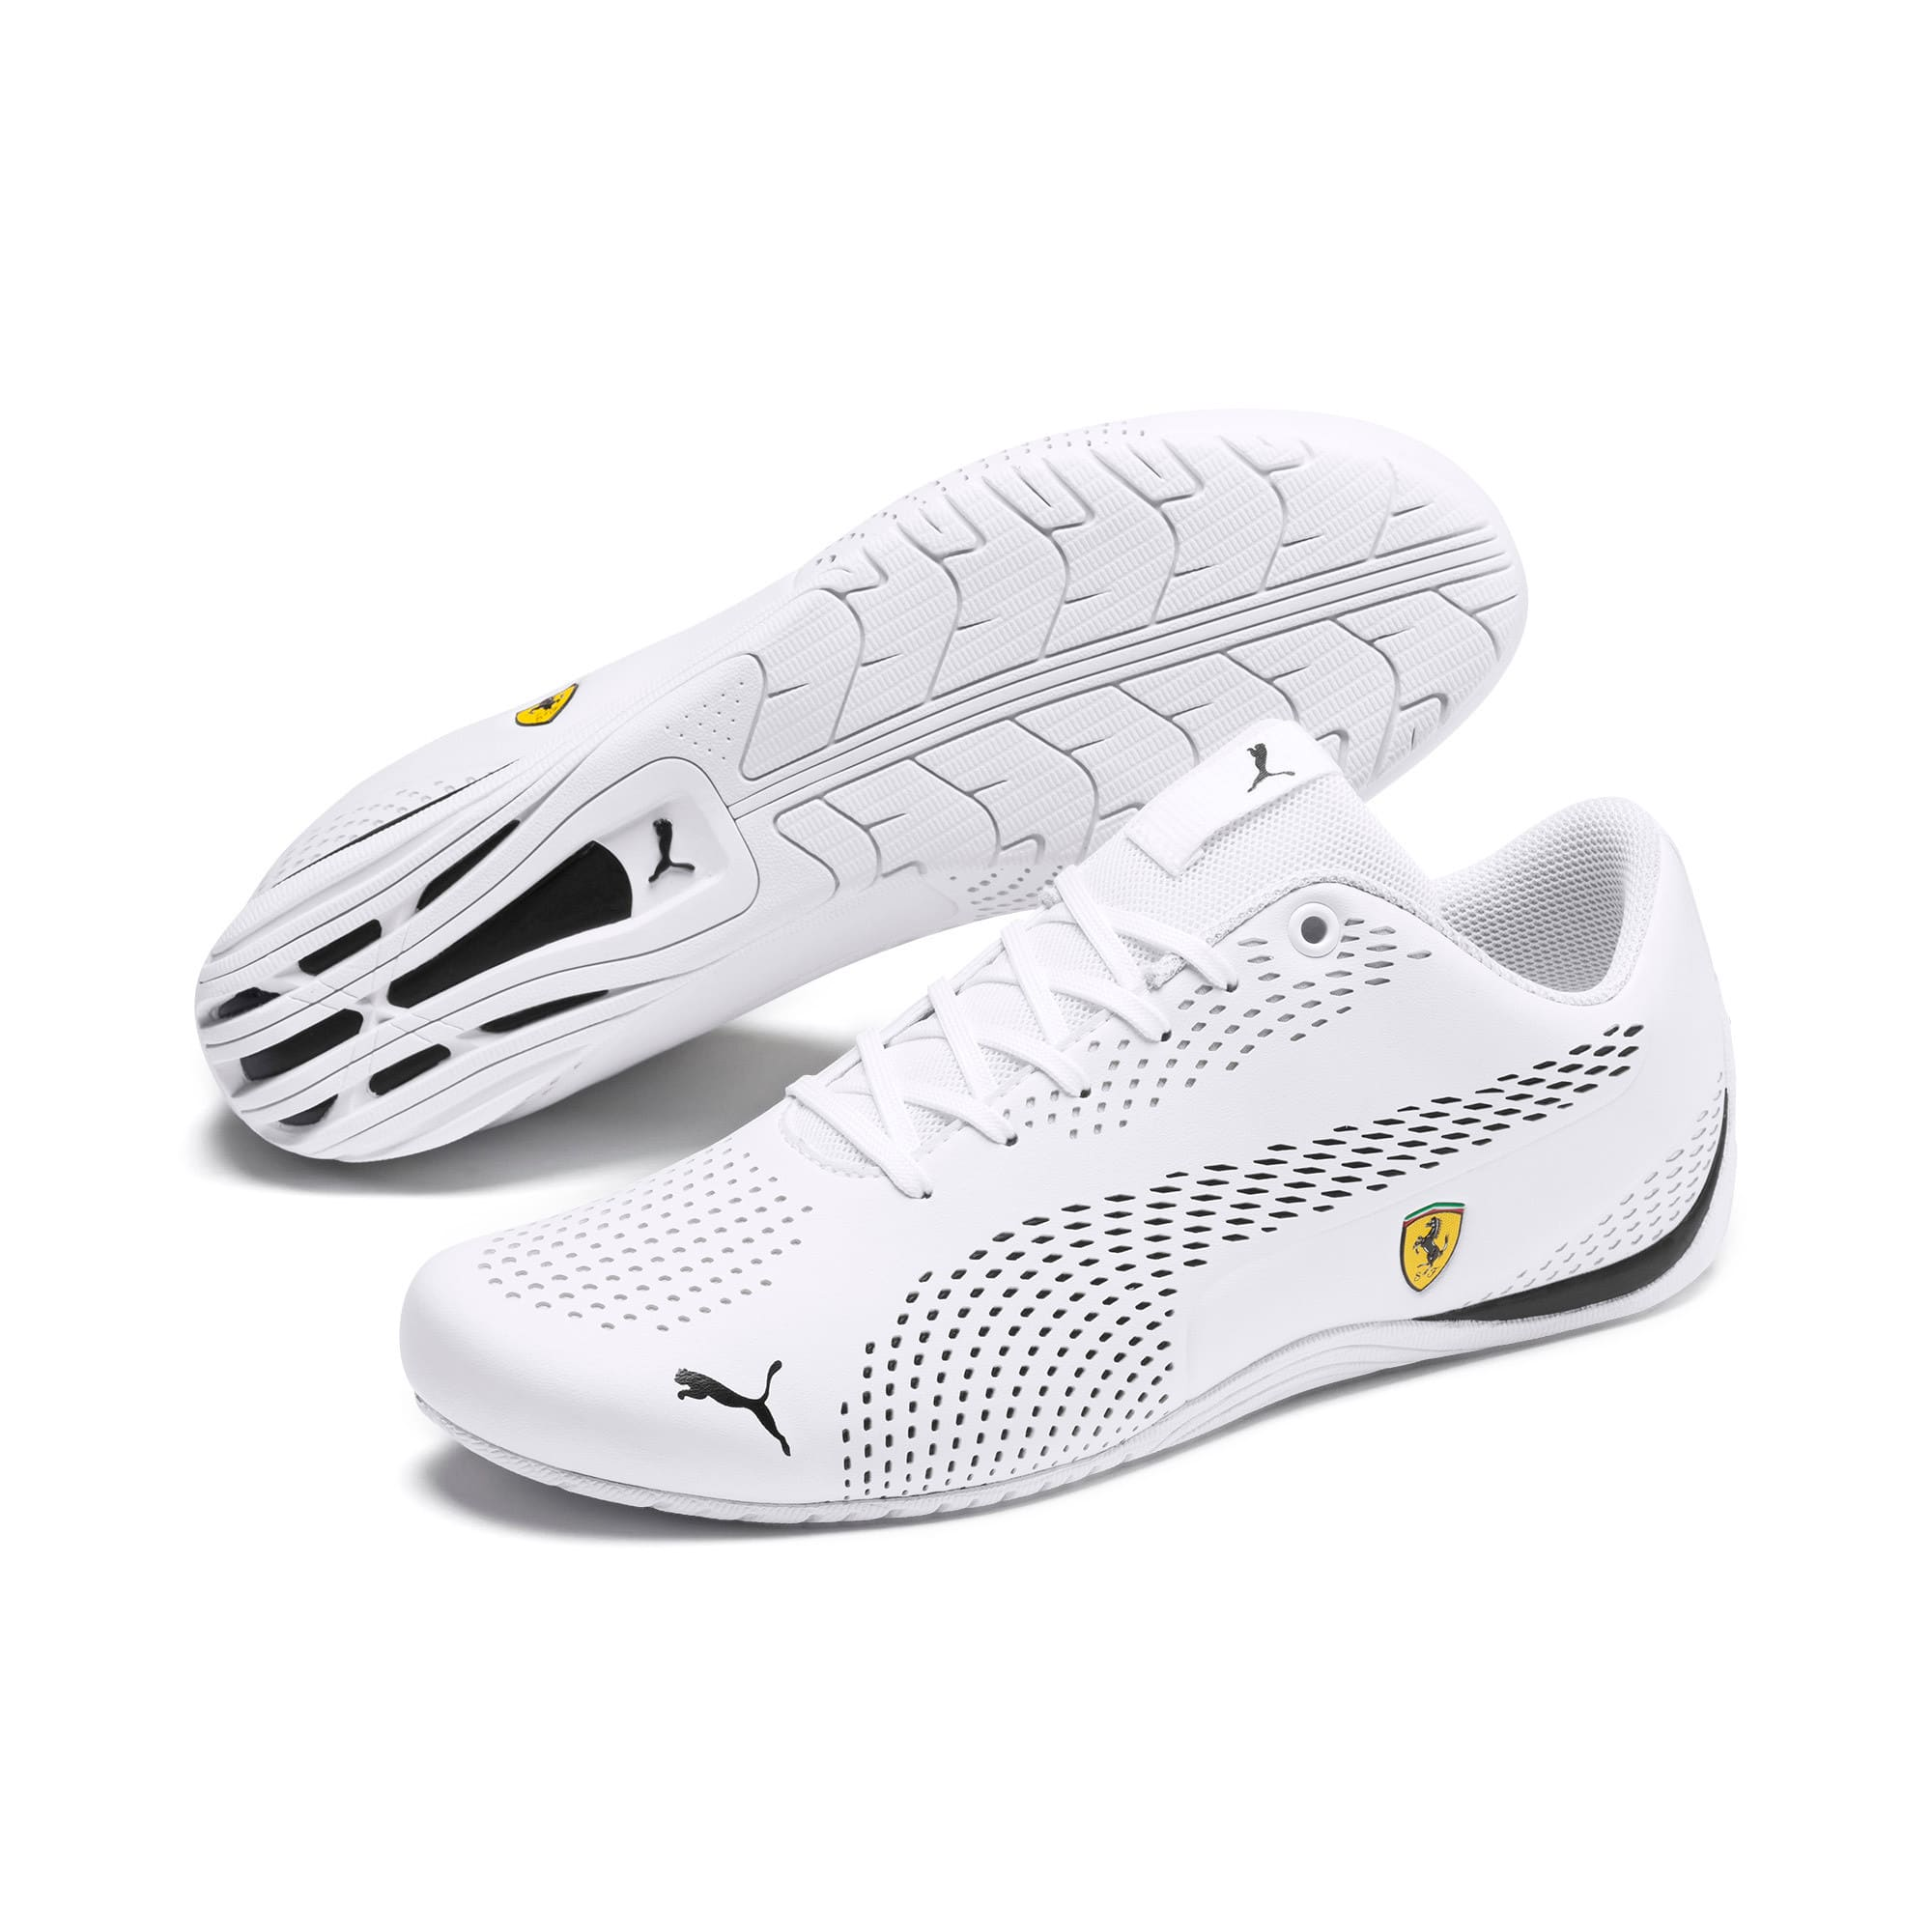 Thumbnail 3 van Ferrari Drift Cat 5 Ultra II sneakers, Puma wit-Puma zwart, medium